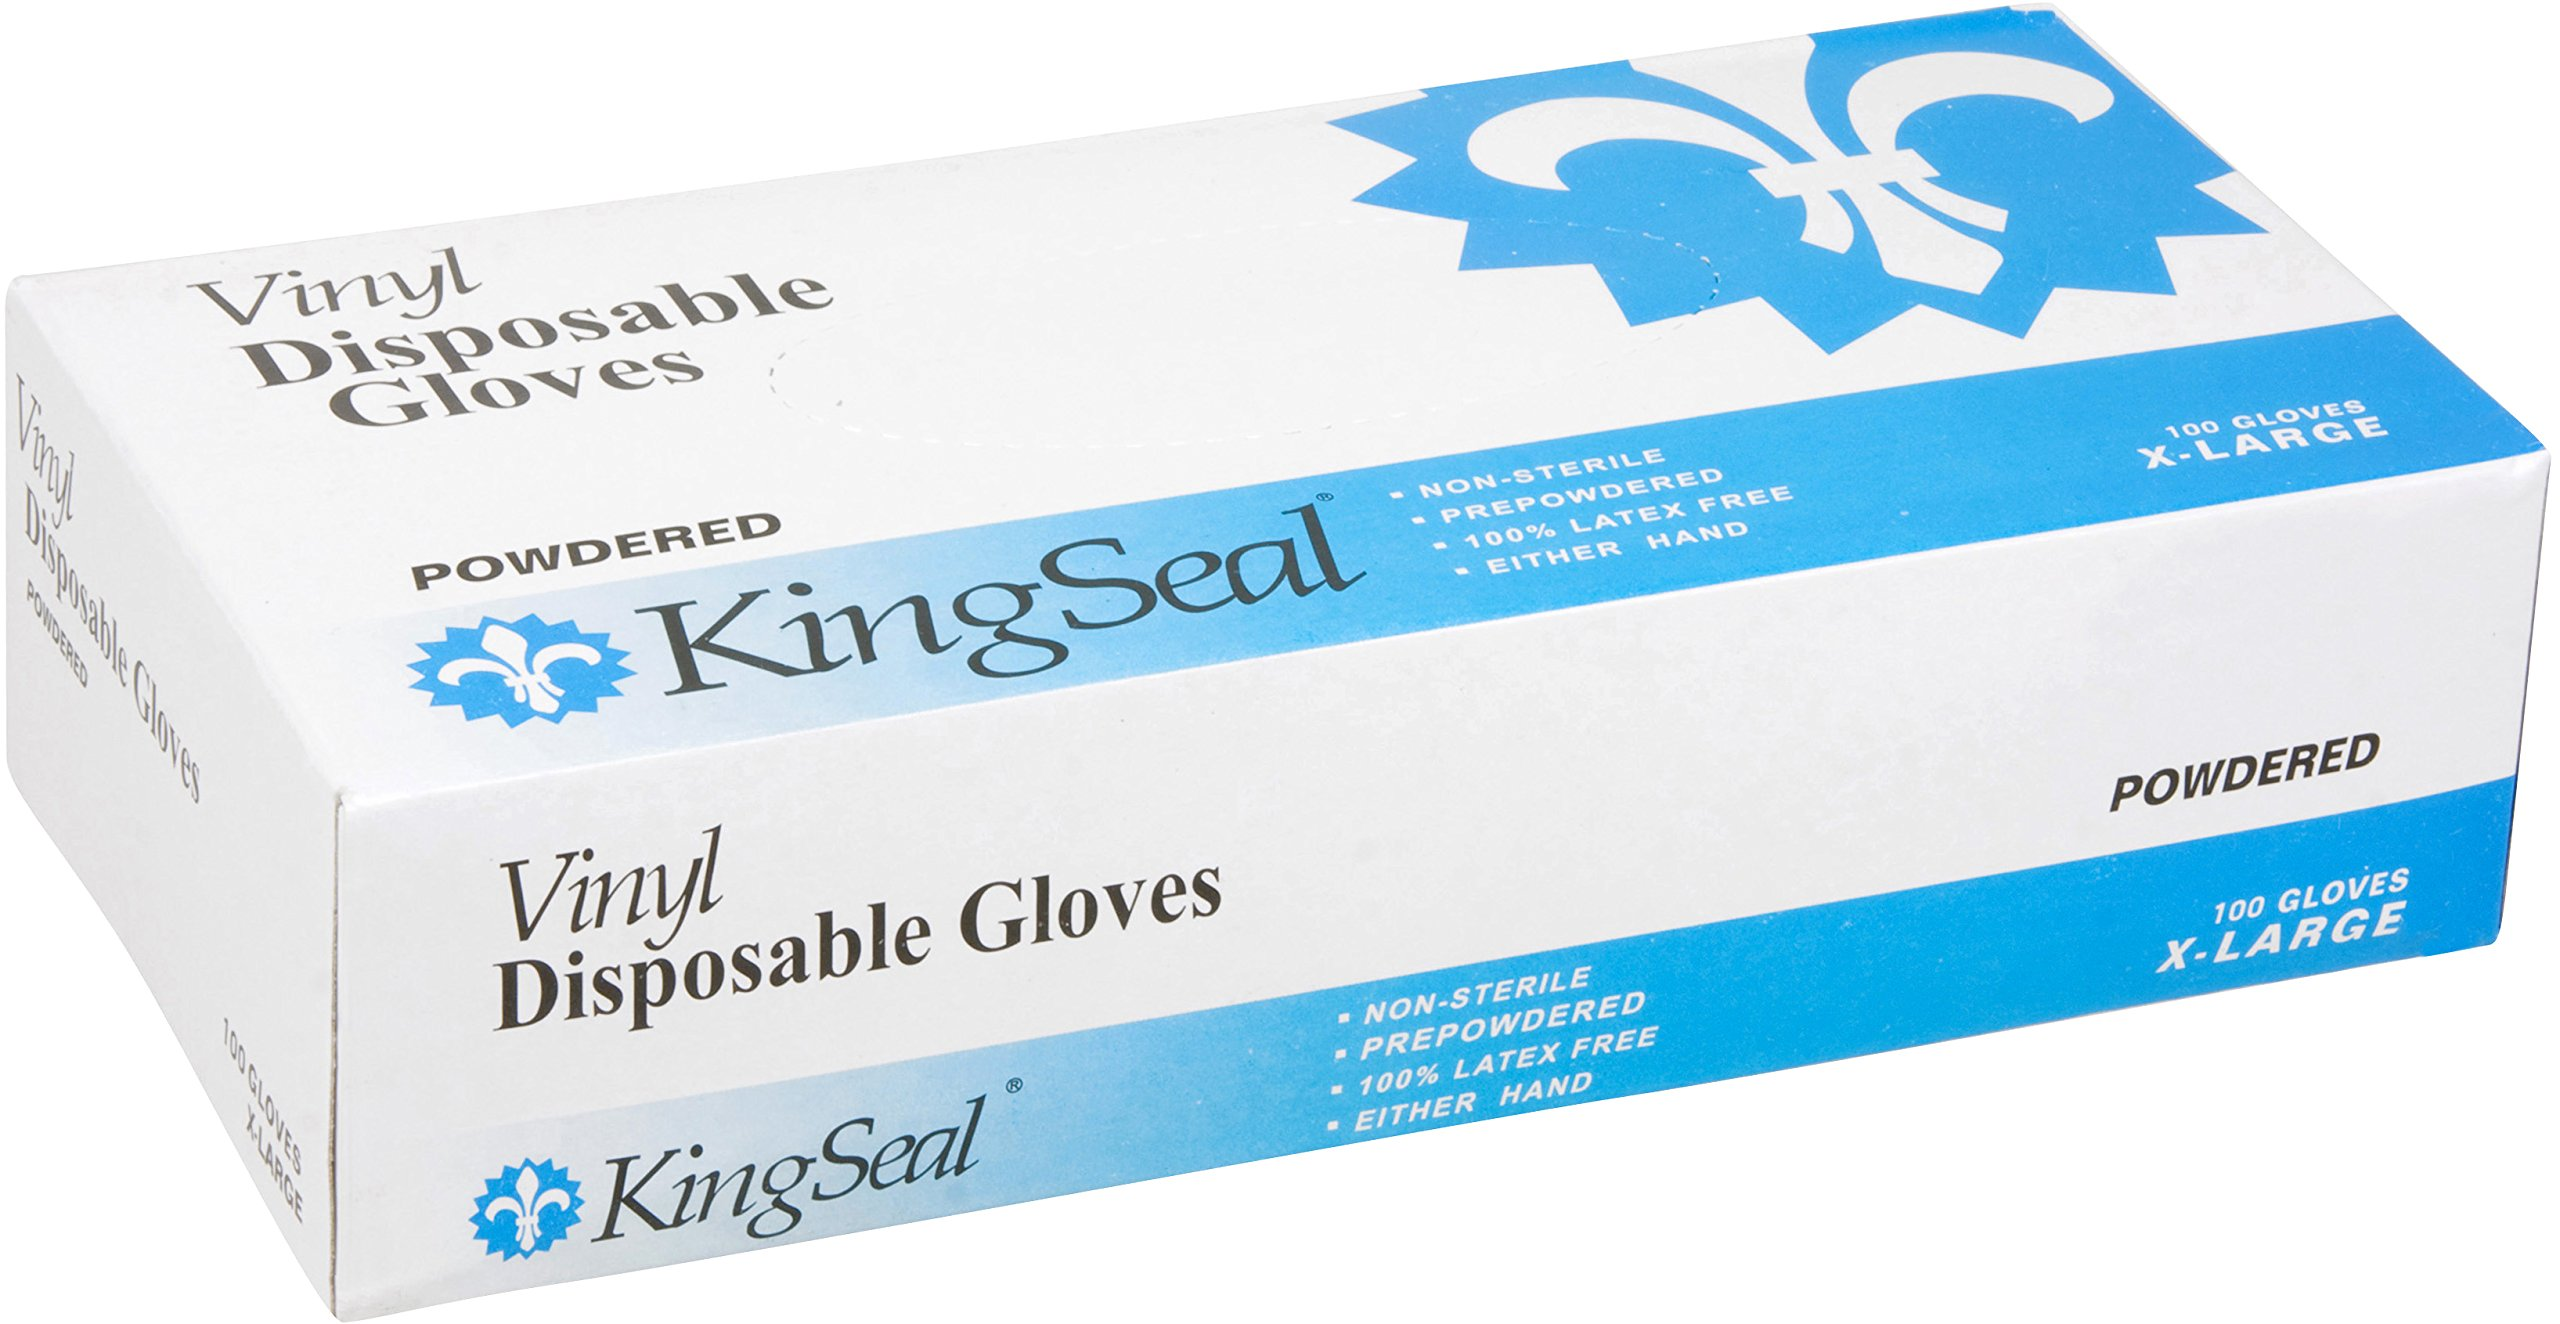 KingSeal Vinyl Disposable Gloves, Powdered, 4 mil, Clear, Medium, 10 bx/100 per Case by KingSeal (Image #2)